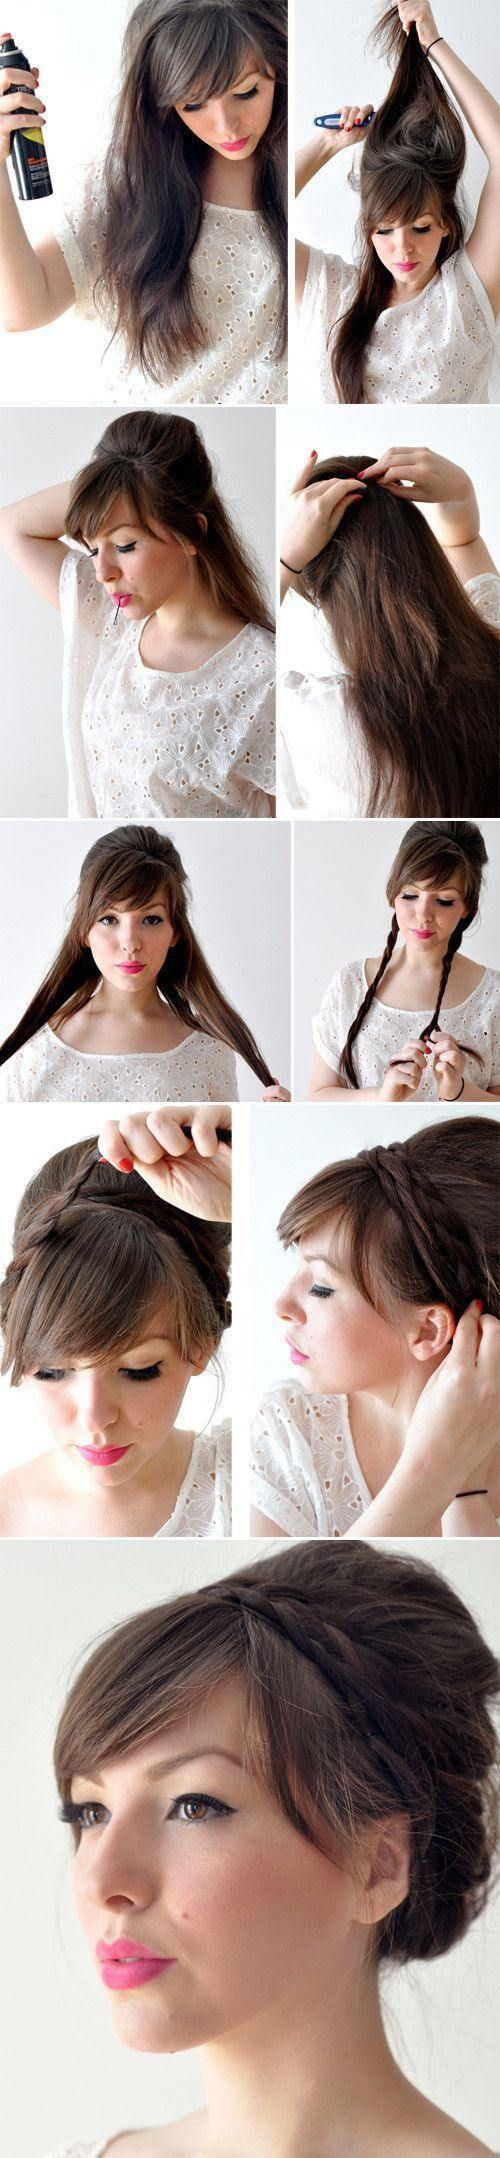 Pin by megan marzano on cute hairstyle pinterest updo hair